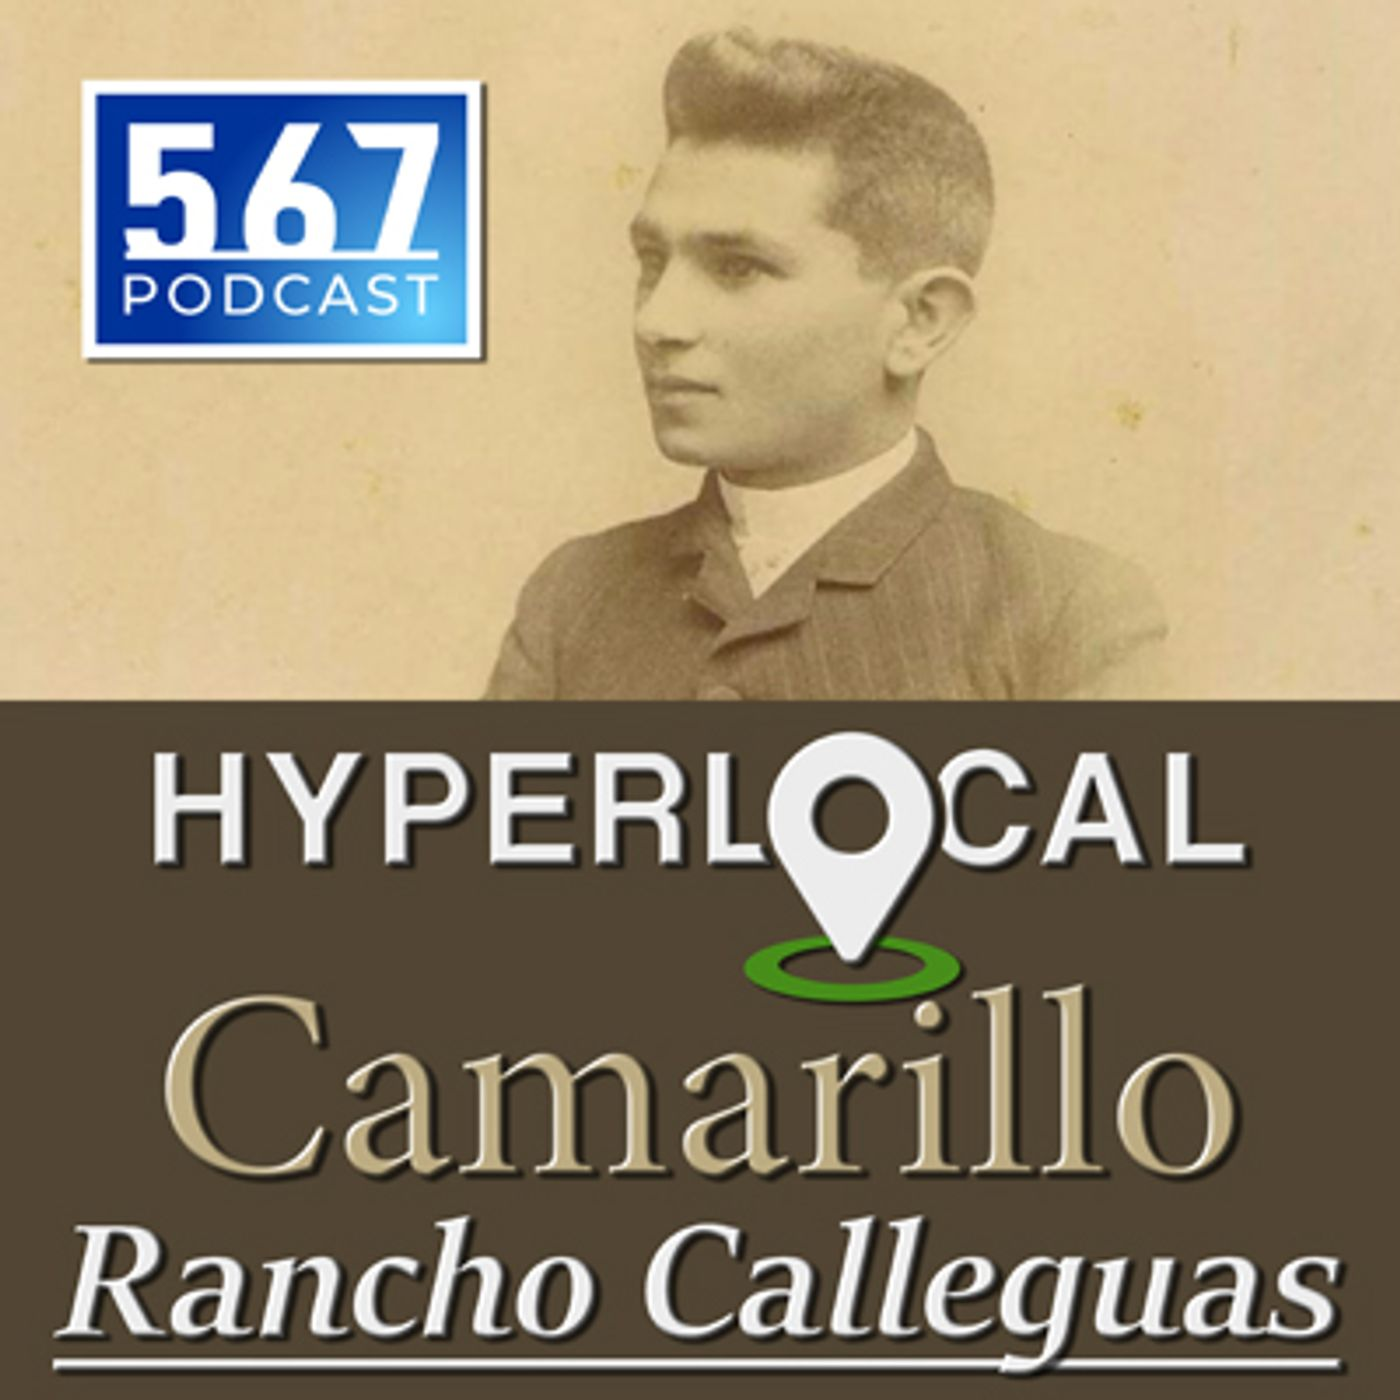 Rancho Calleguas: How Southern California's Transportation Boom Gave Birth to a New City